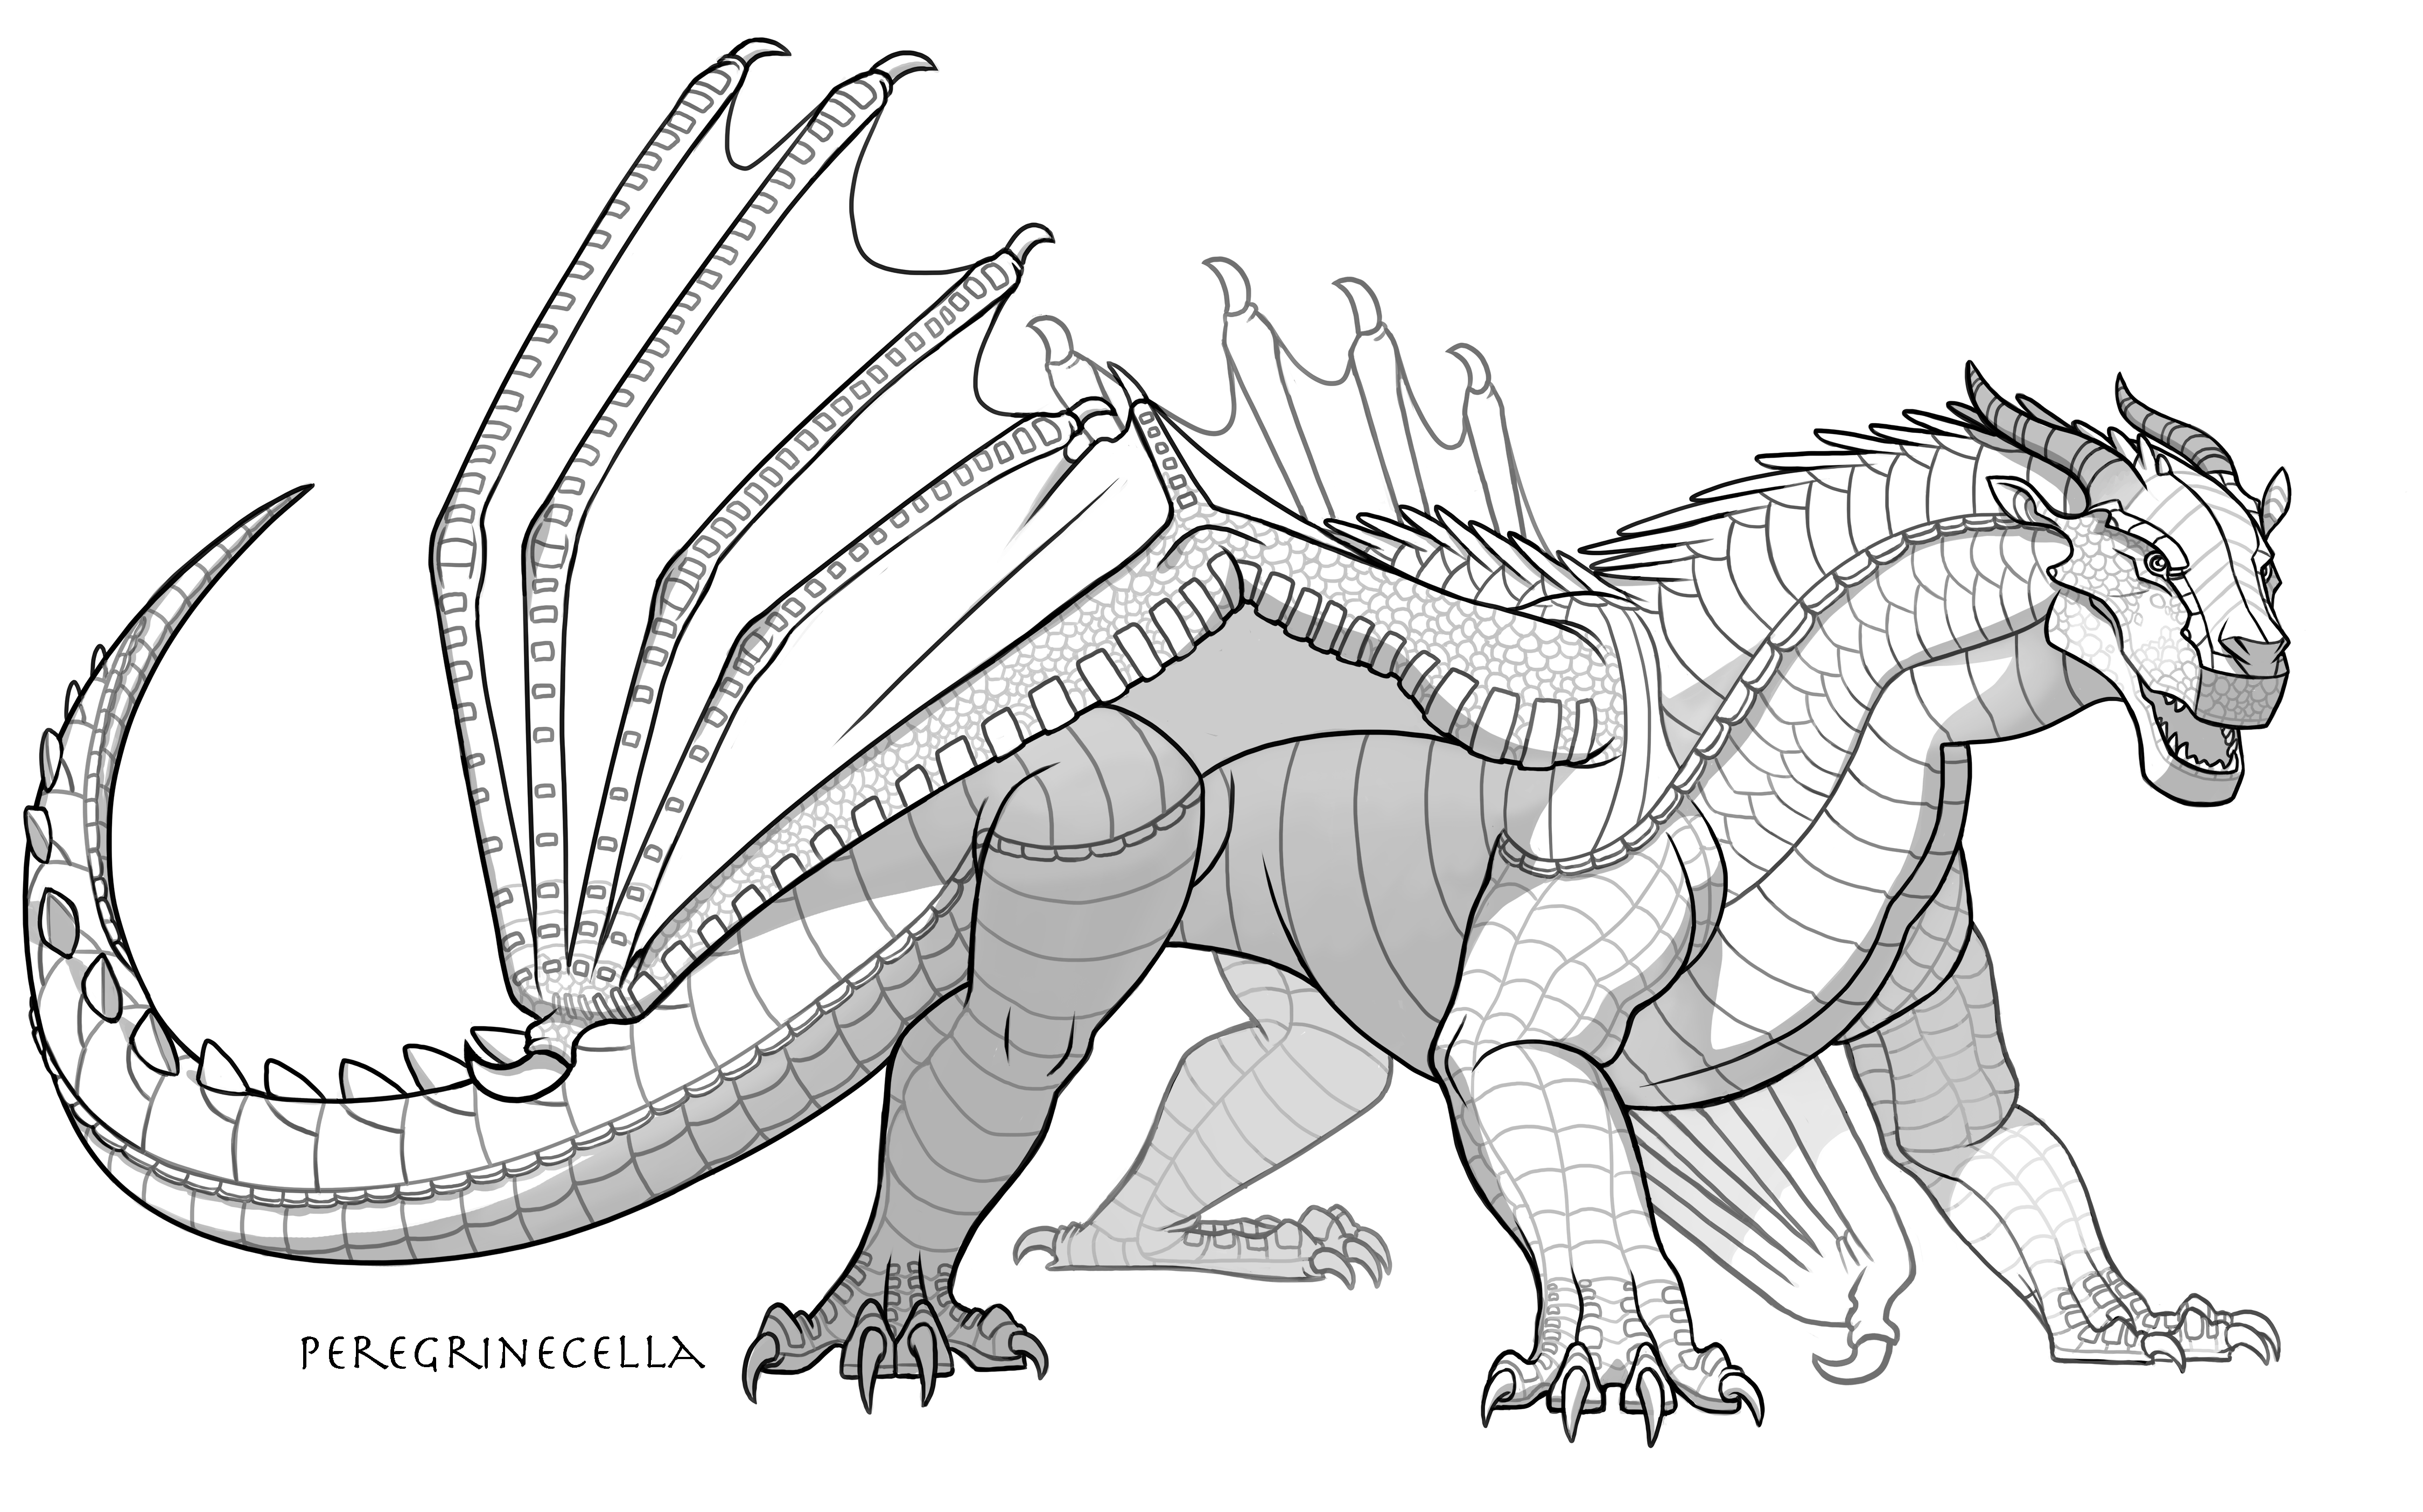 Mudwing Base By Peregrinecella On Deviantart In 2020 Wings Of Fire Dragons Wings Of Fire Dragon Sketch